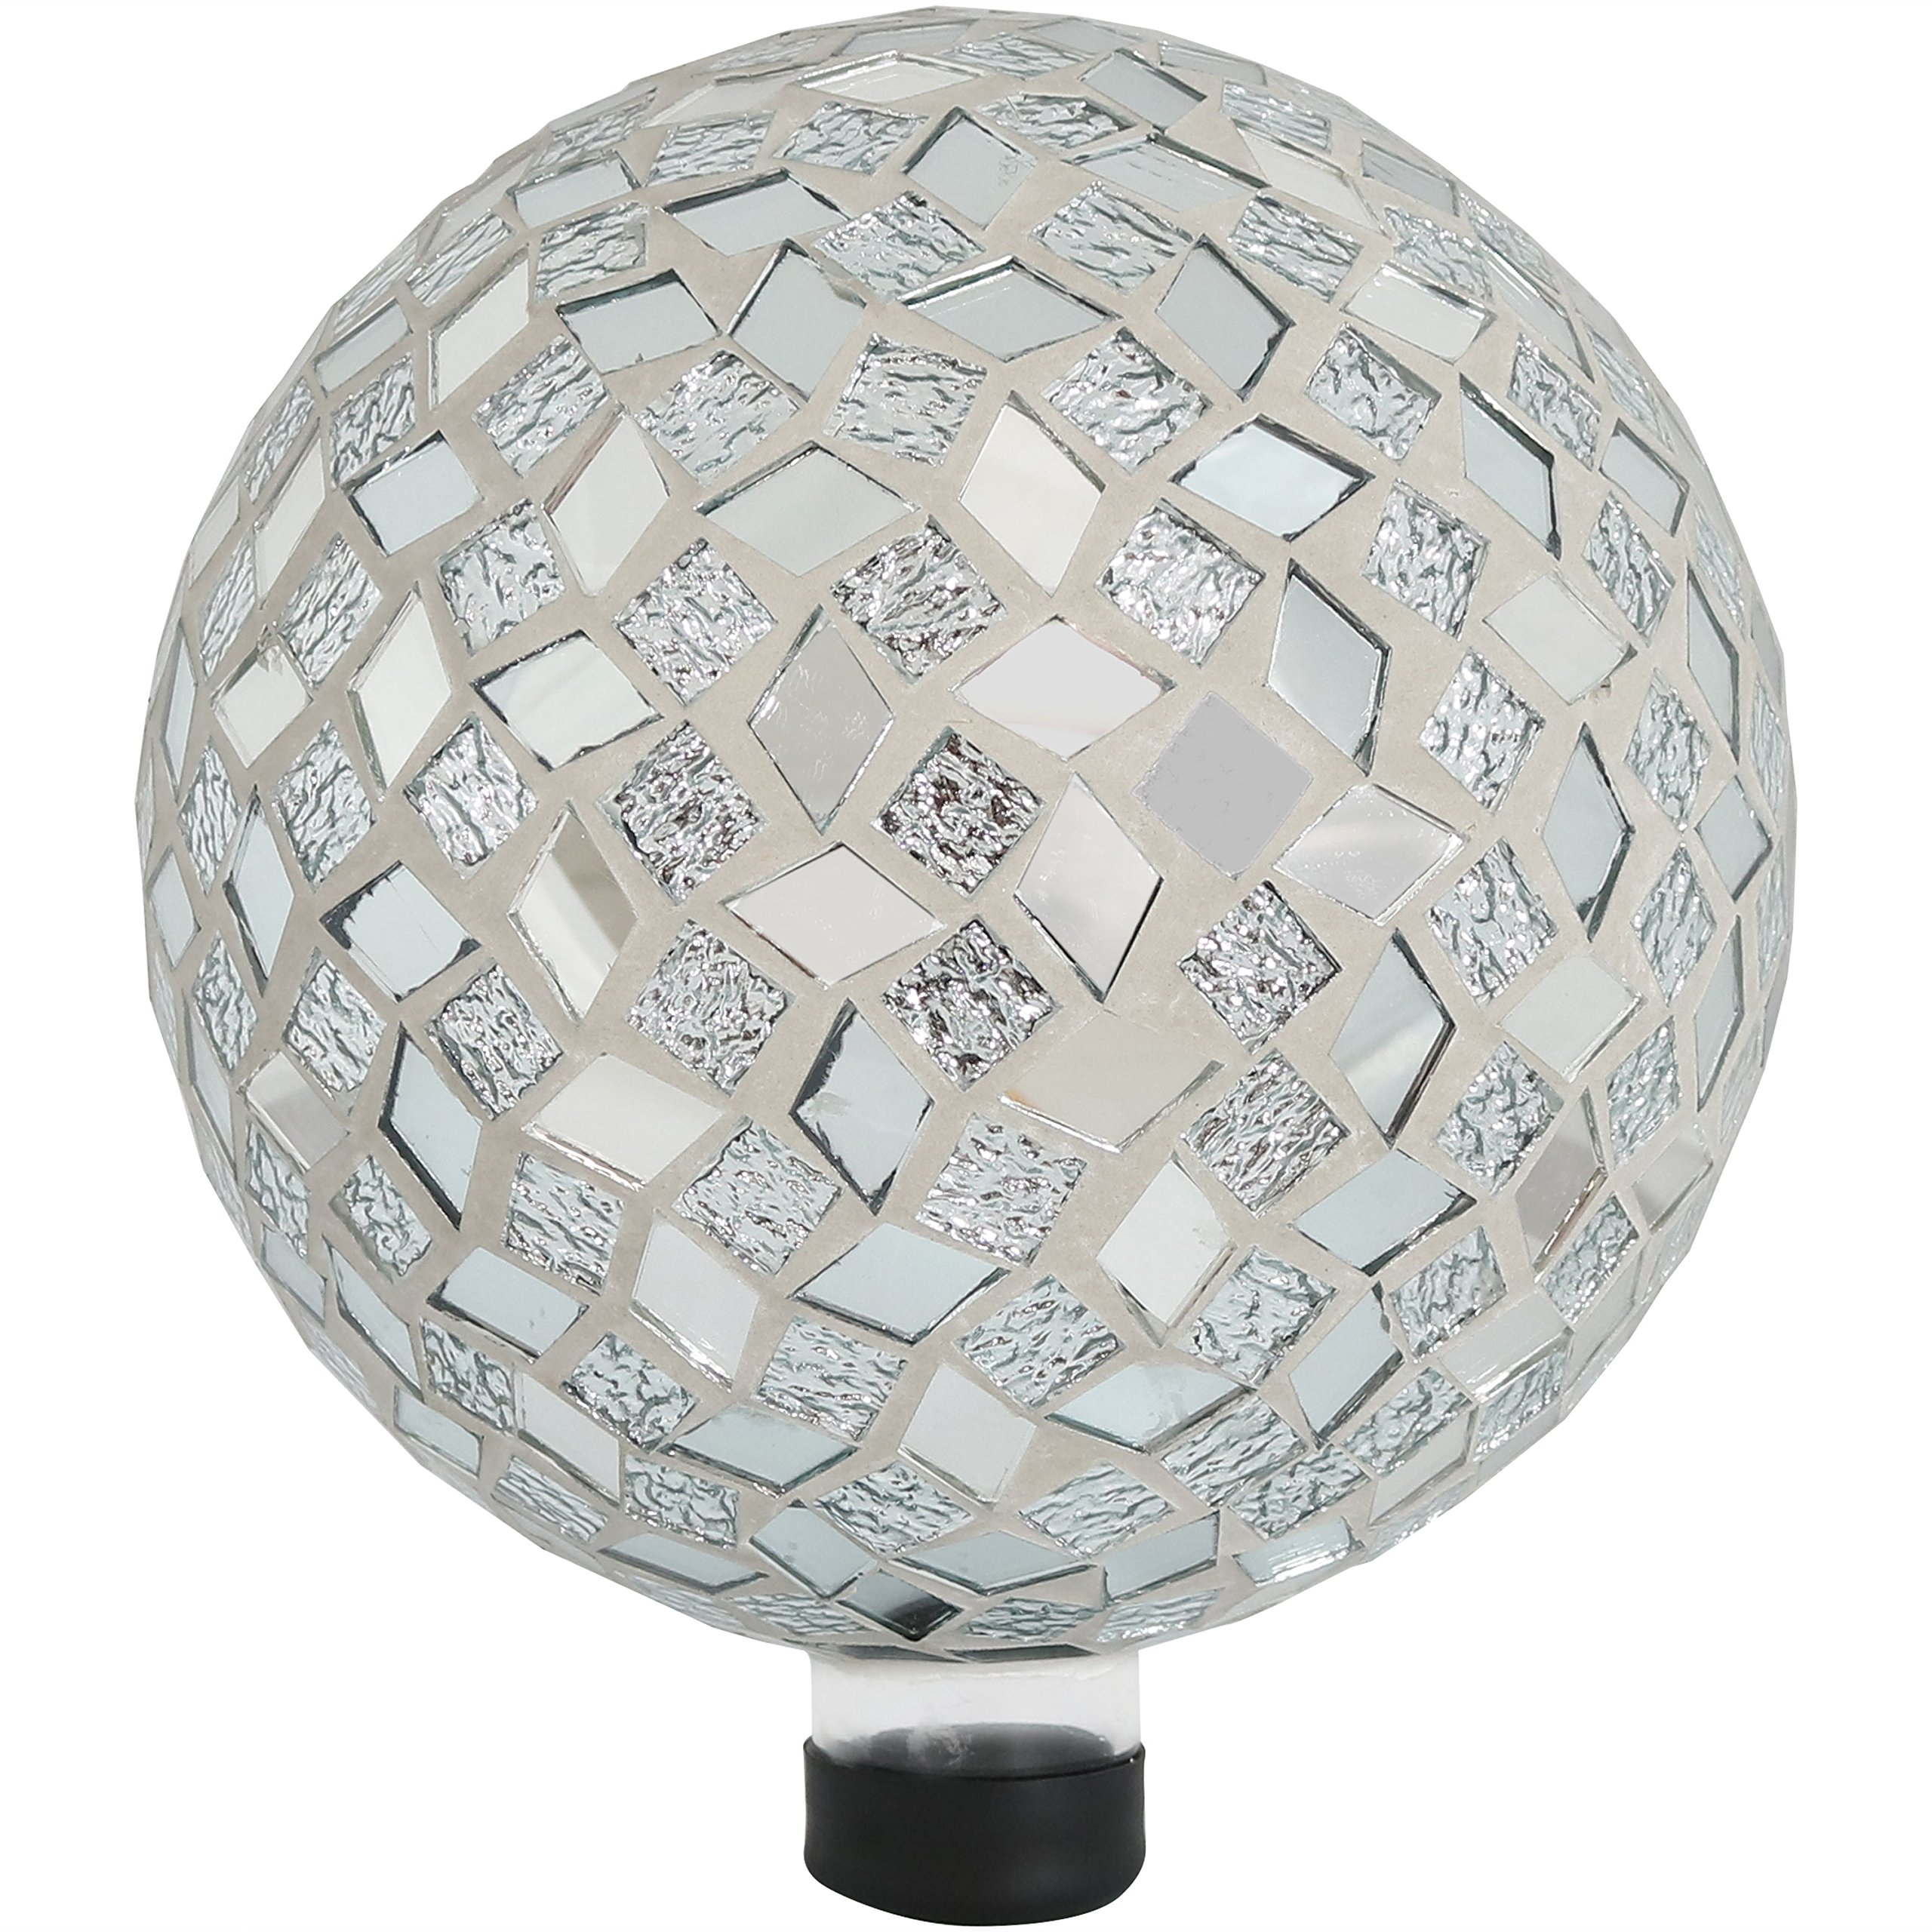 Sunnydaze Mirrored Diamond Mosaic Gazing Globe Glass Garden Ball, Outdoor Lawn Yard Ornament, 10-inch